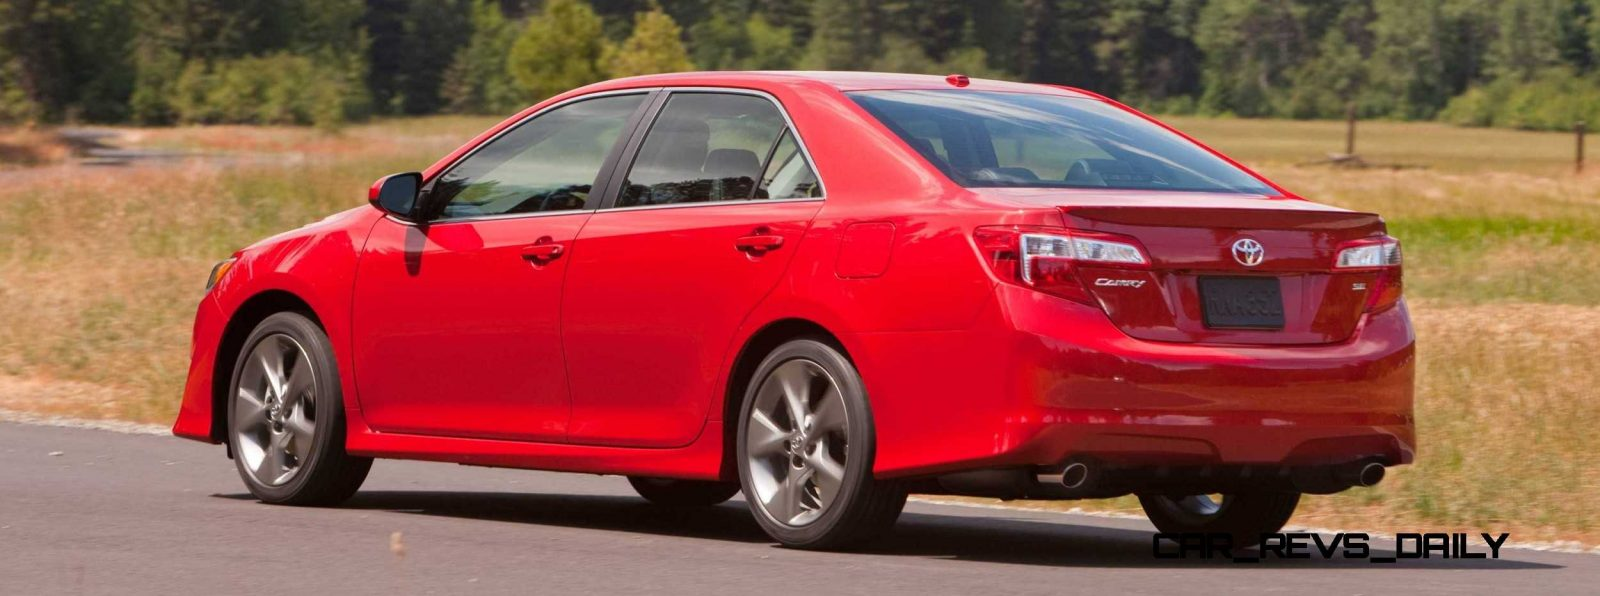 2016 TOYOTA CAMRY DIFFERENCES